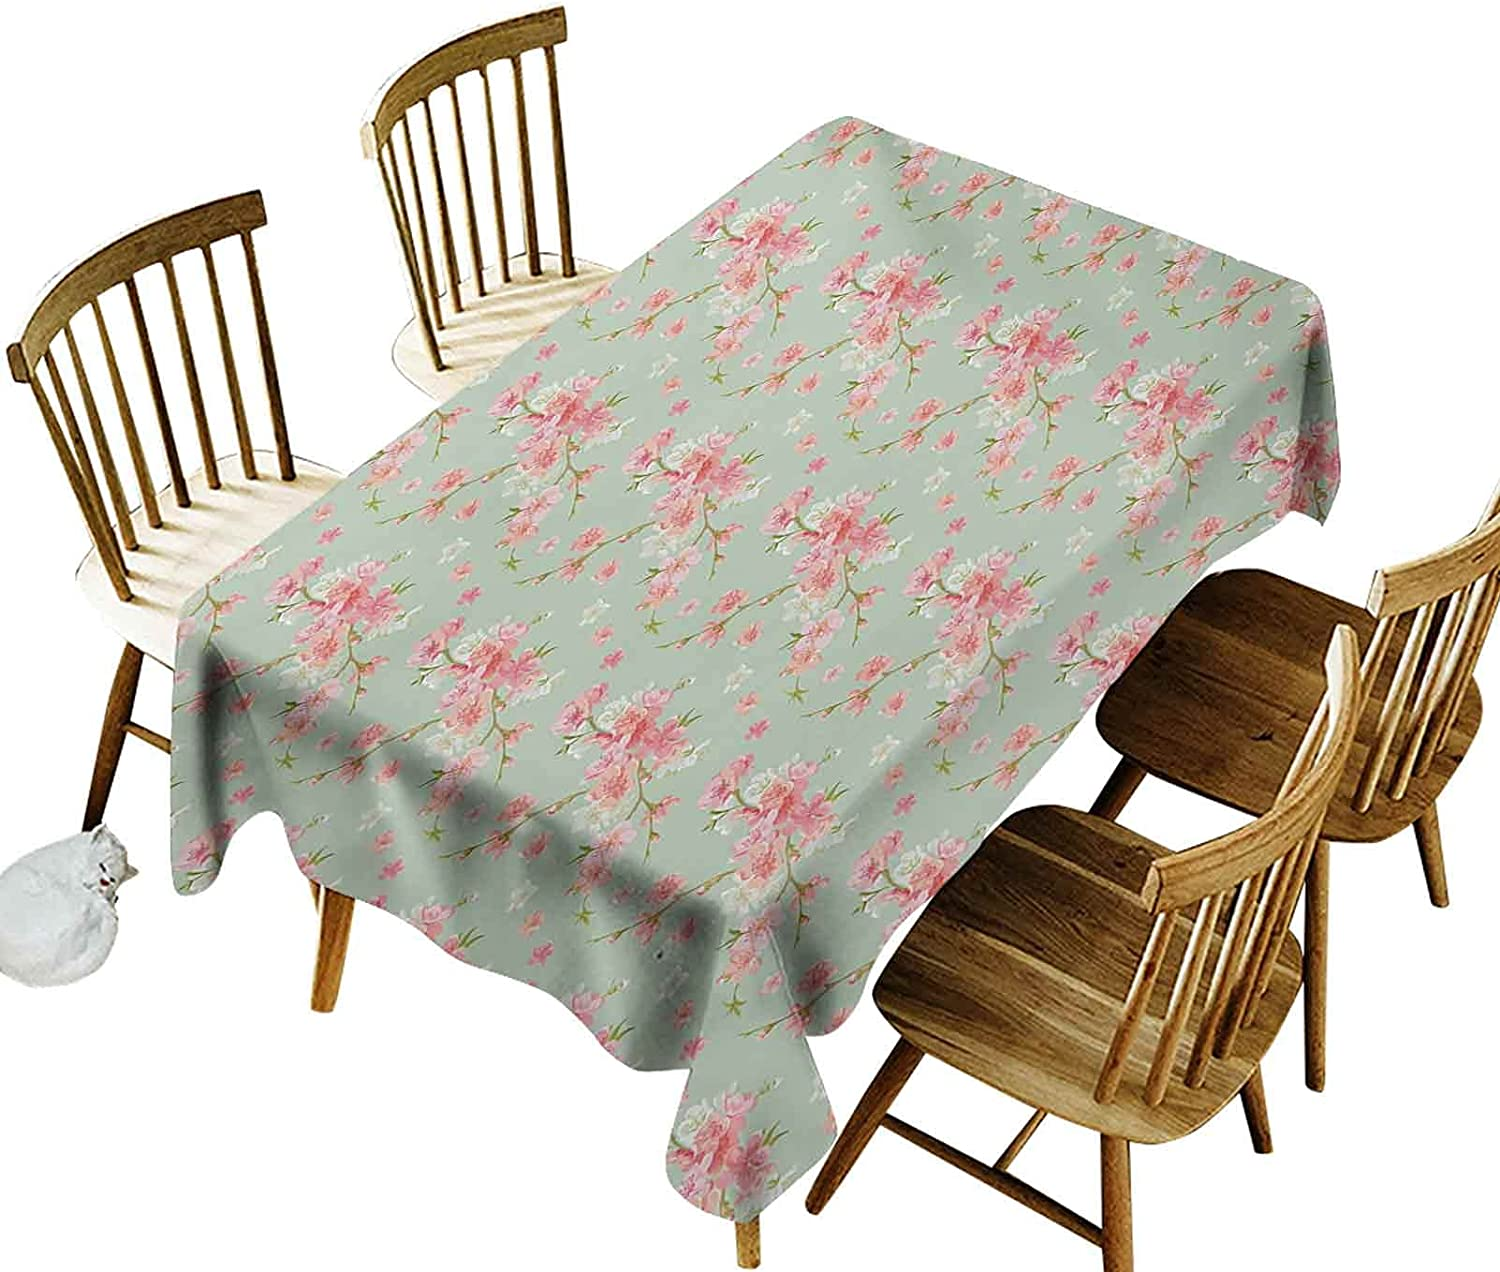 Iuvolux Rectangle Table Cloth, Retro Spring Blossom Flowers with French Garden Florets Garland Artisan Image, Oil-Proof,Stain Proof, (Oblong 60 x 84 Inch) for Spring/Summer/Party/Picnic